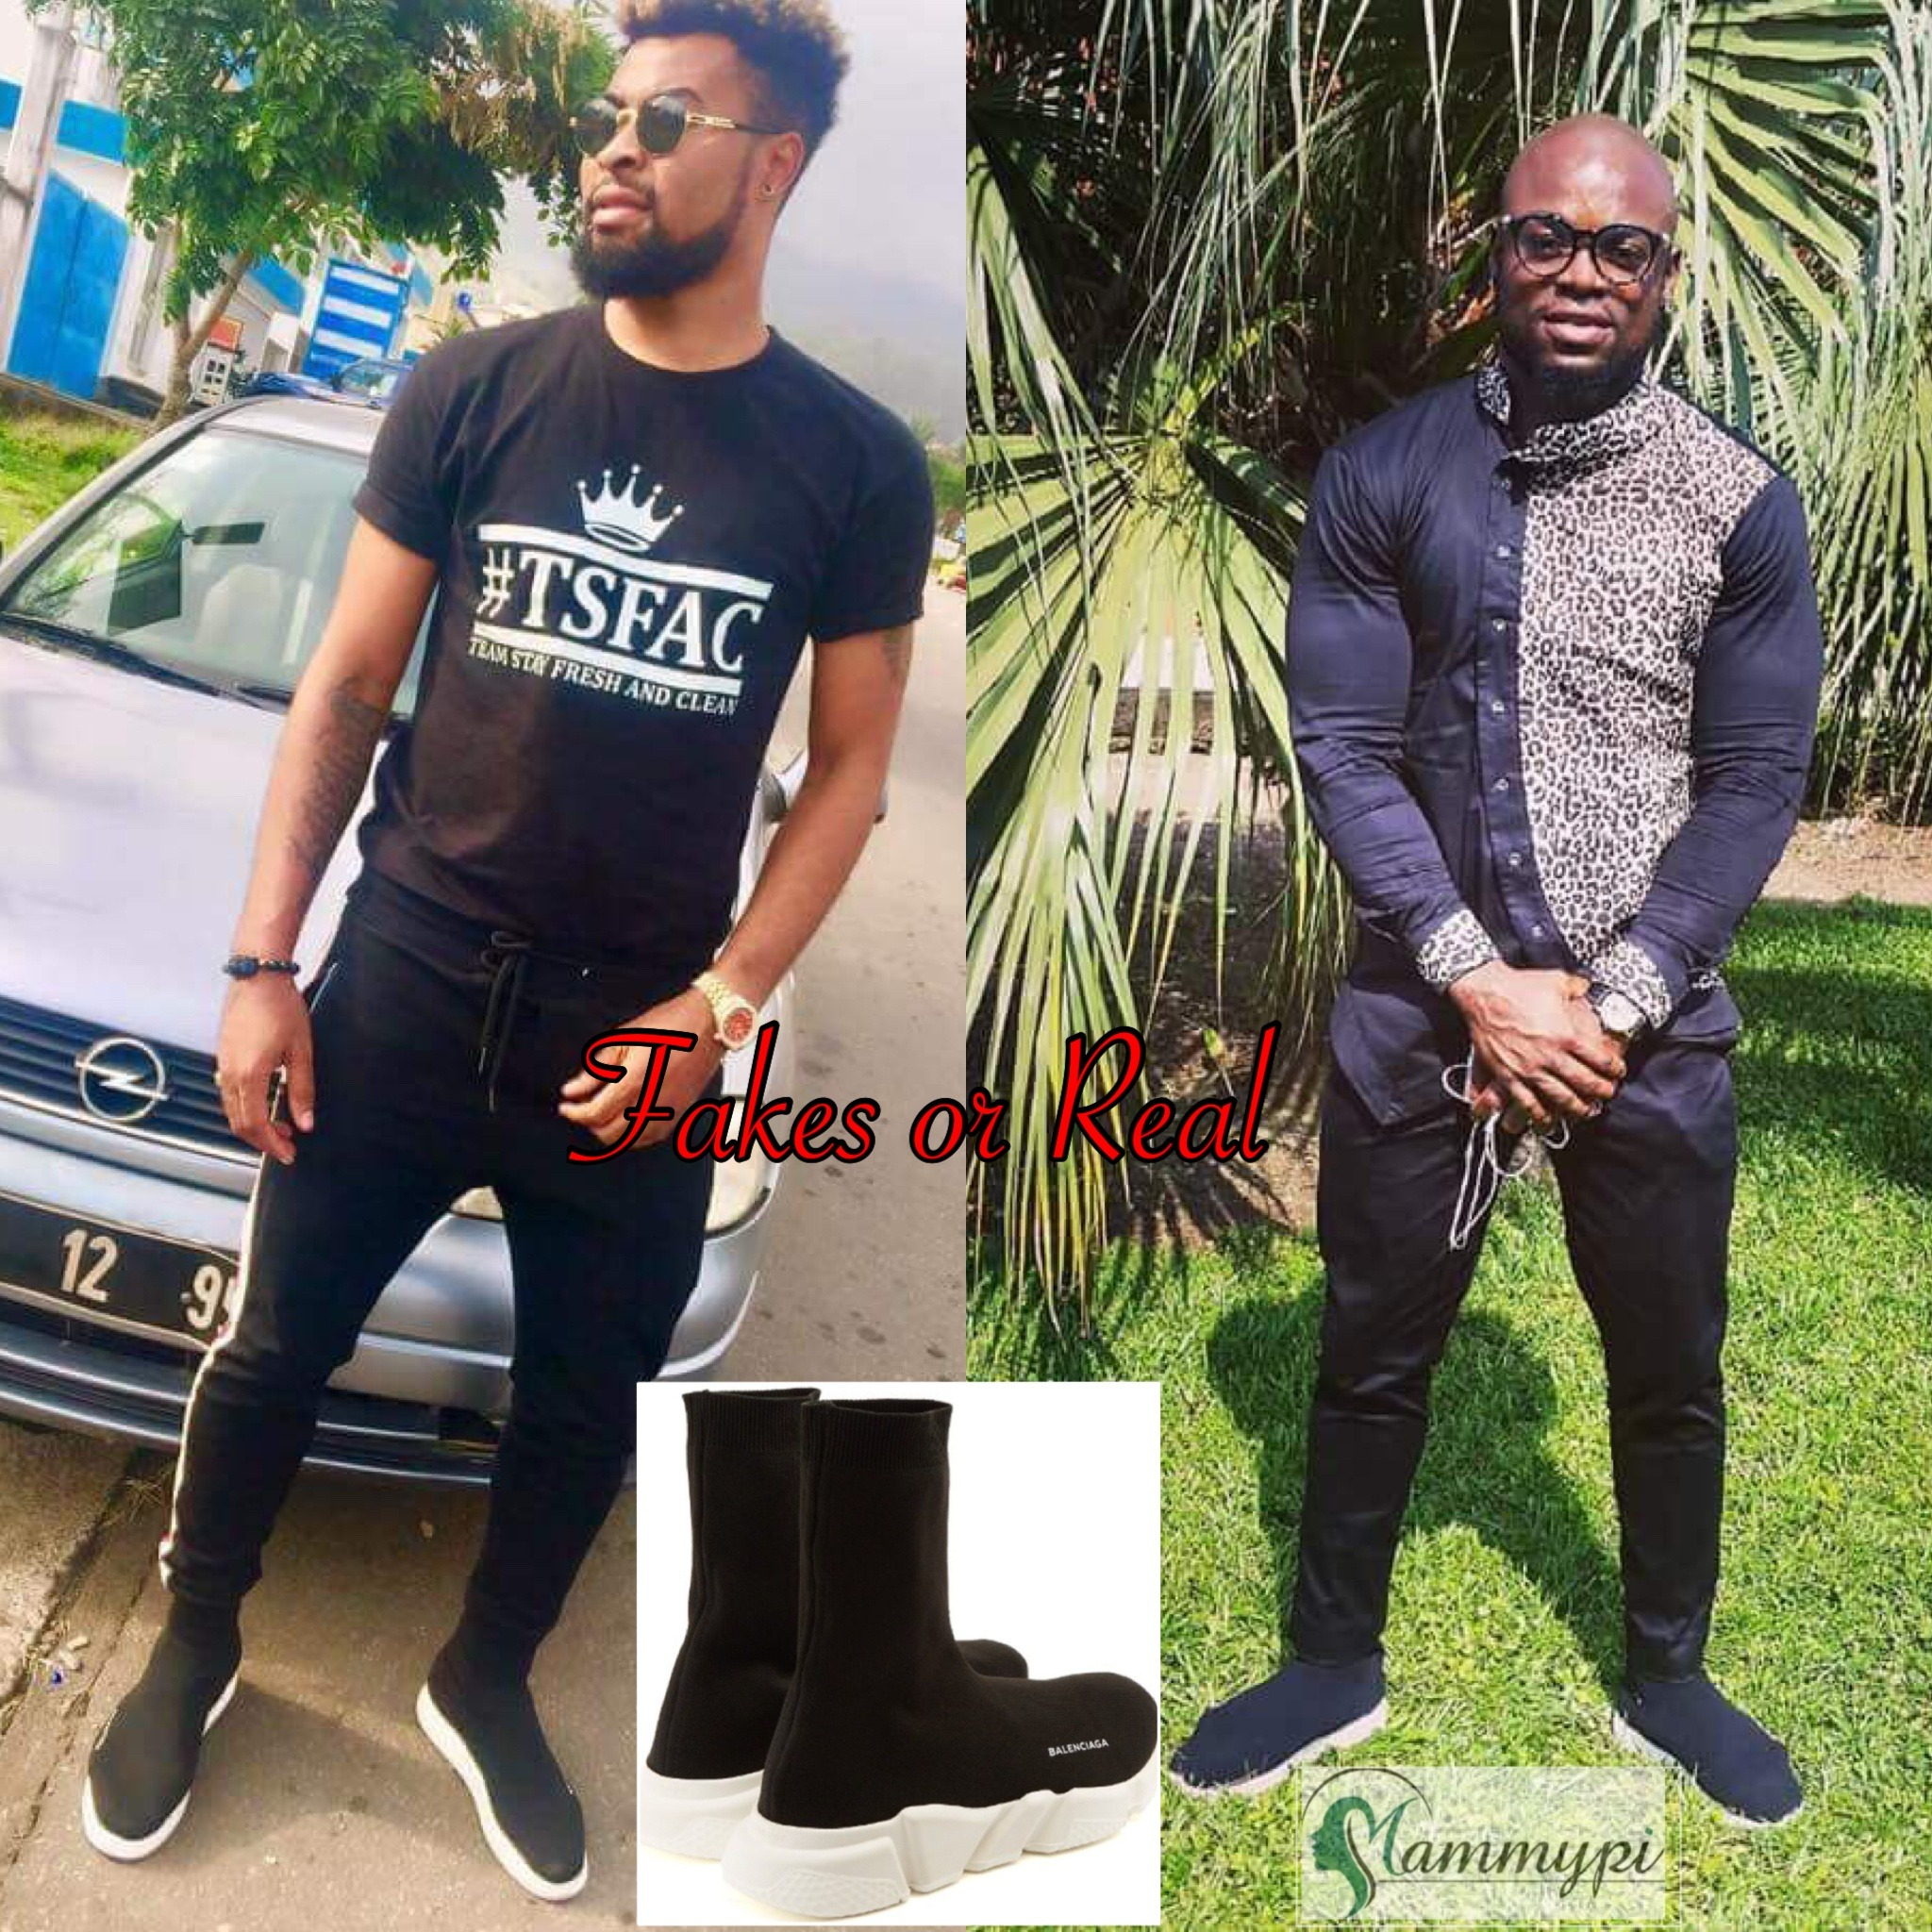 Buea Based Socialites Caught In Fake Balenciaga Shoe Scandal